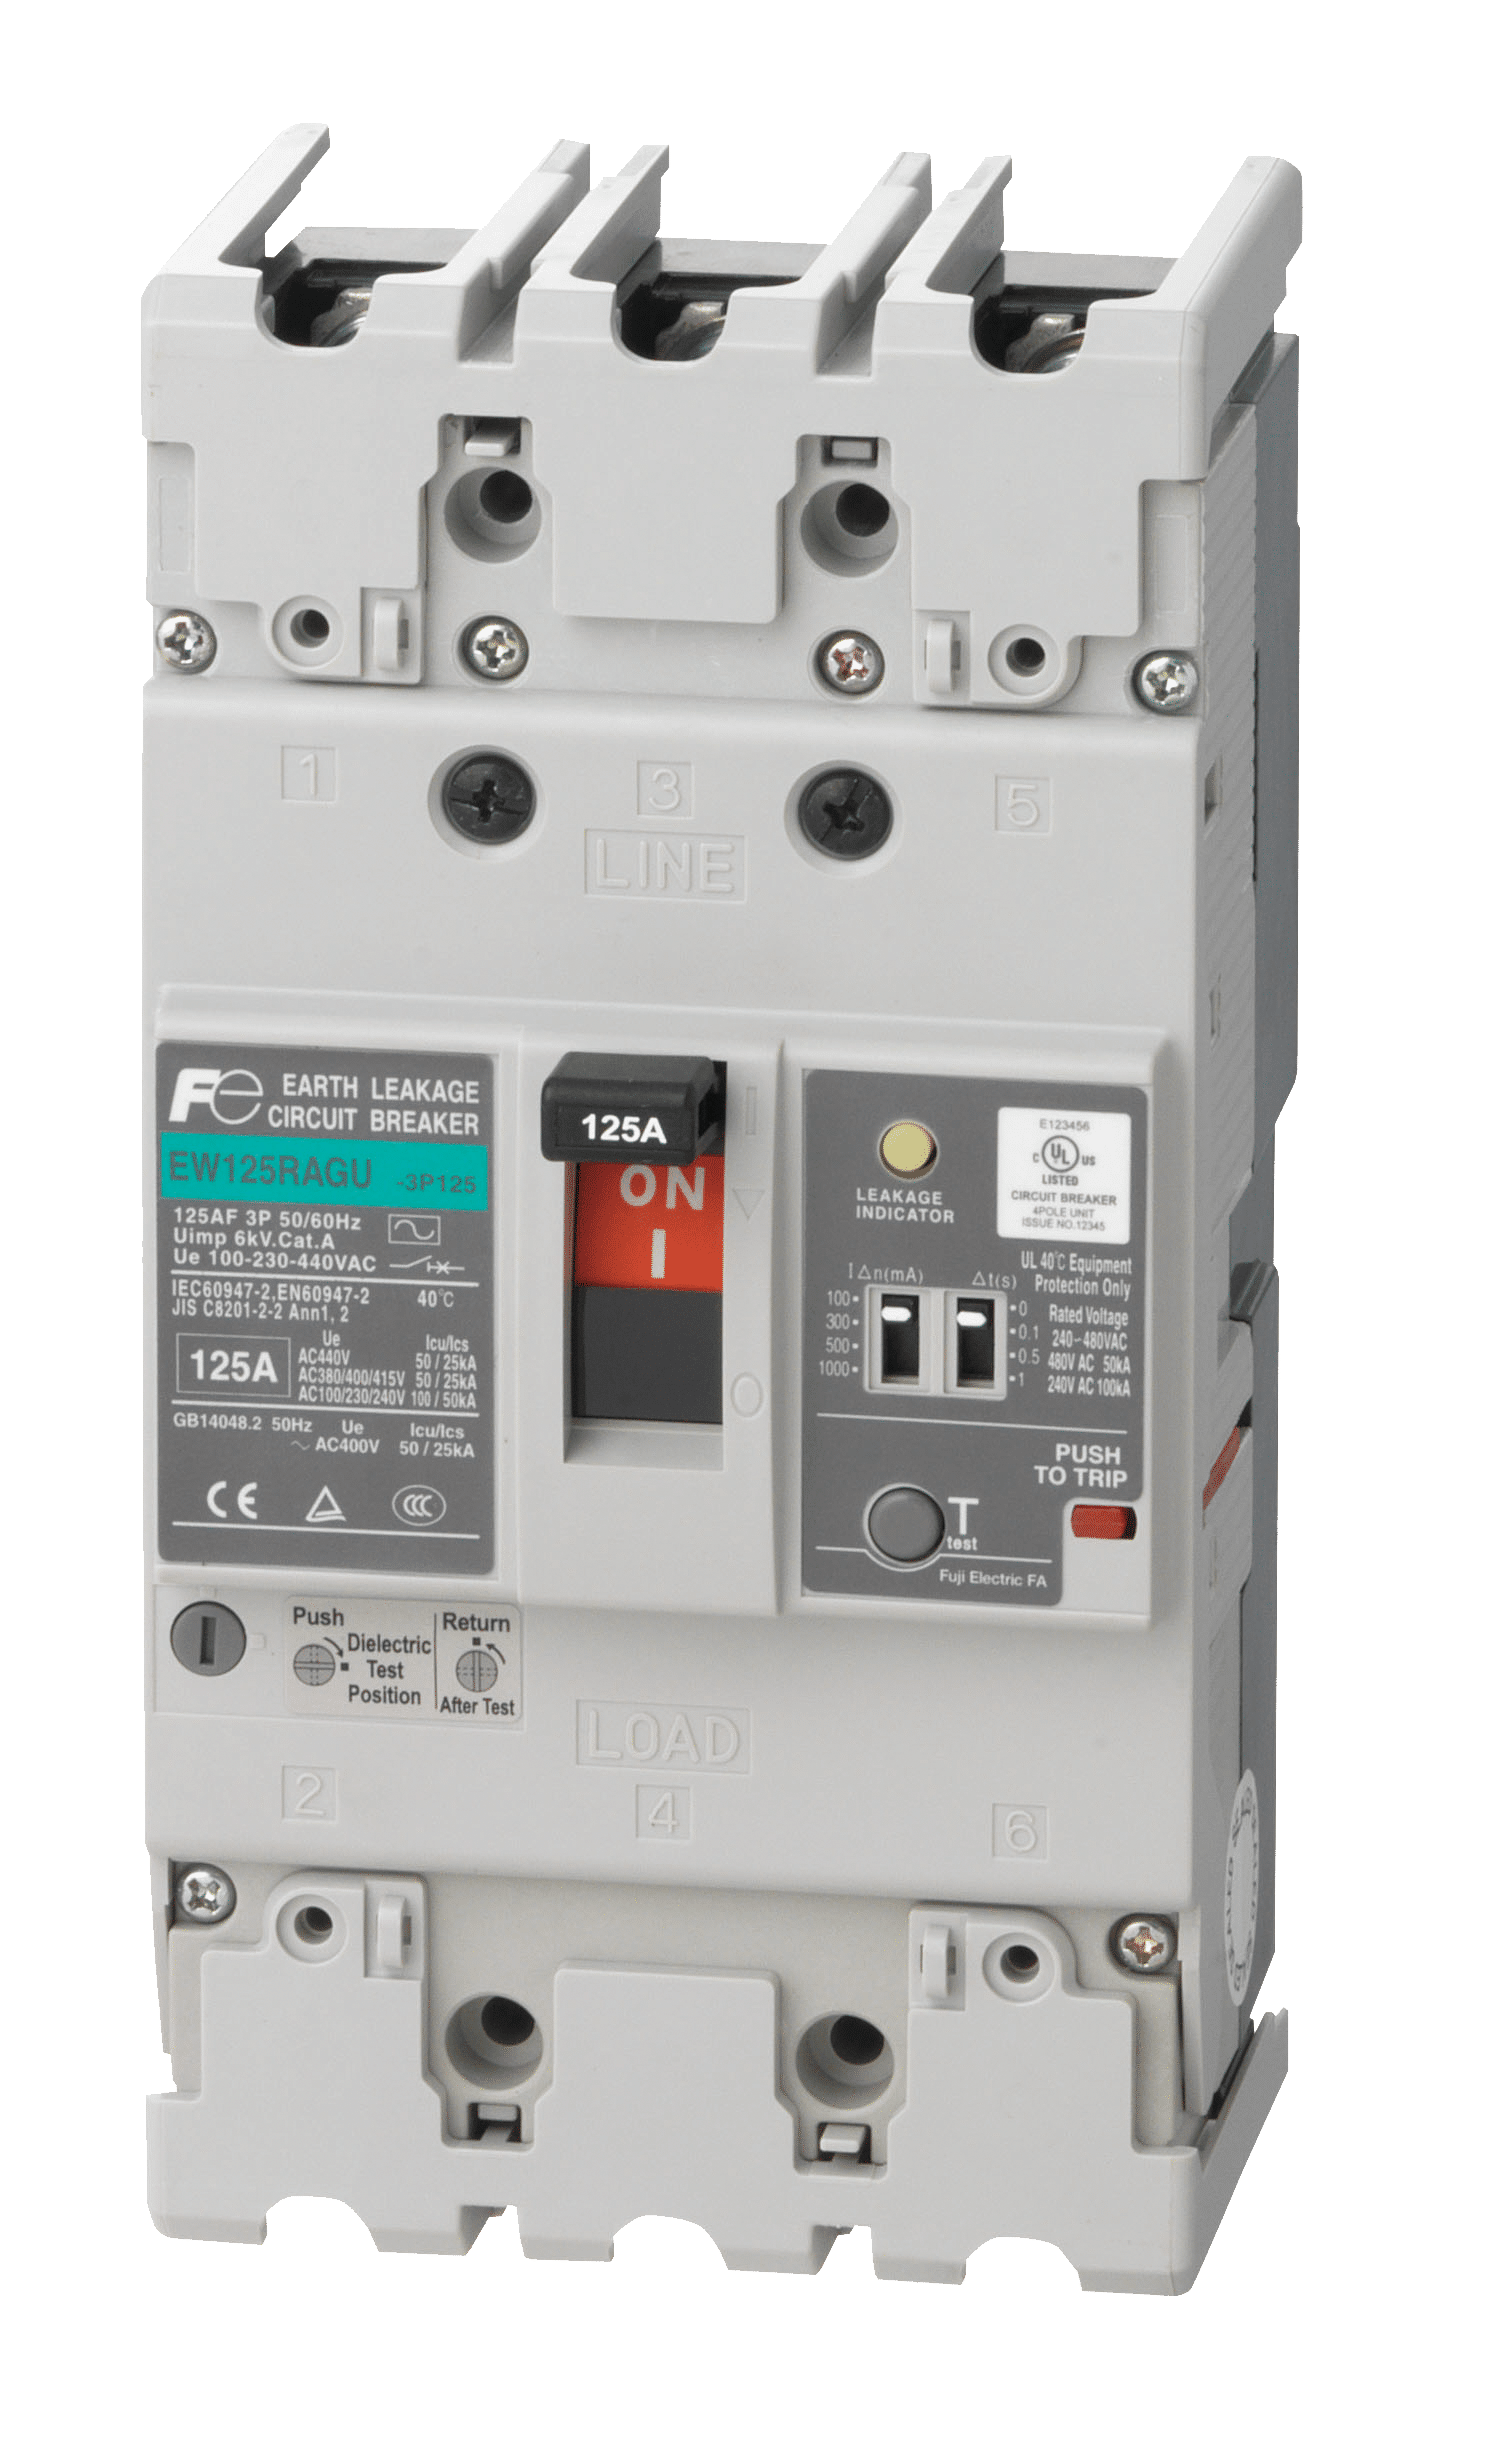 Earth Leakage Circuit Breaker Elcb Manufacturer Fuji Electric Dc Current Balance Relay Breakers